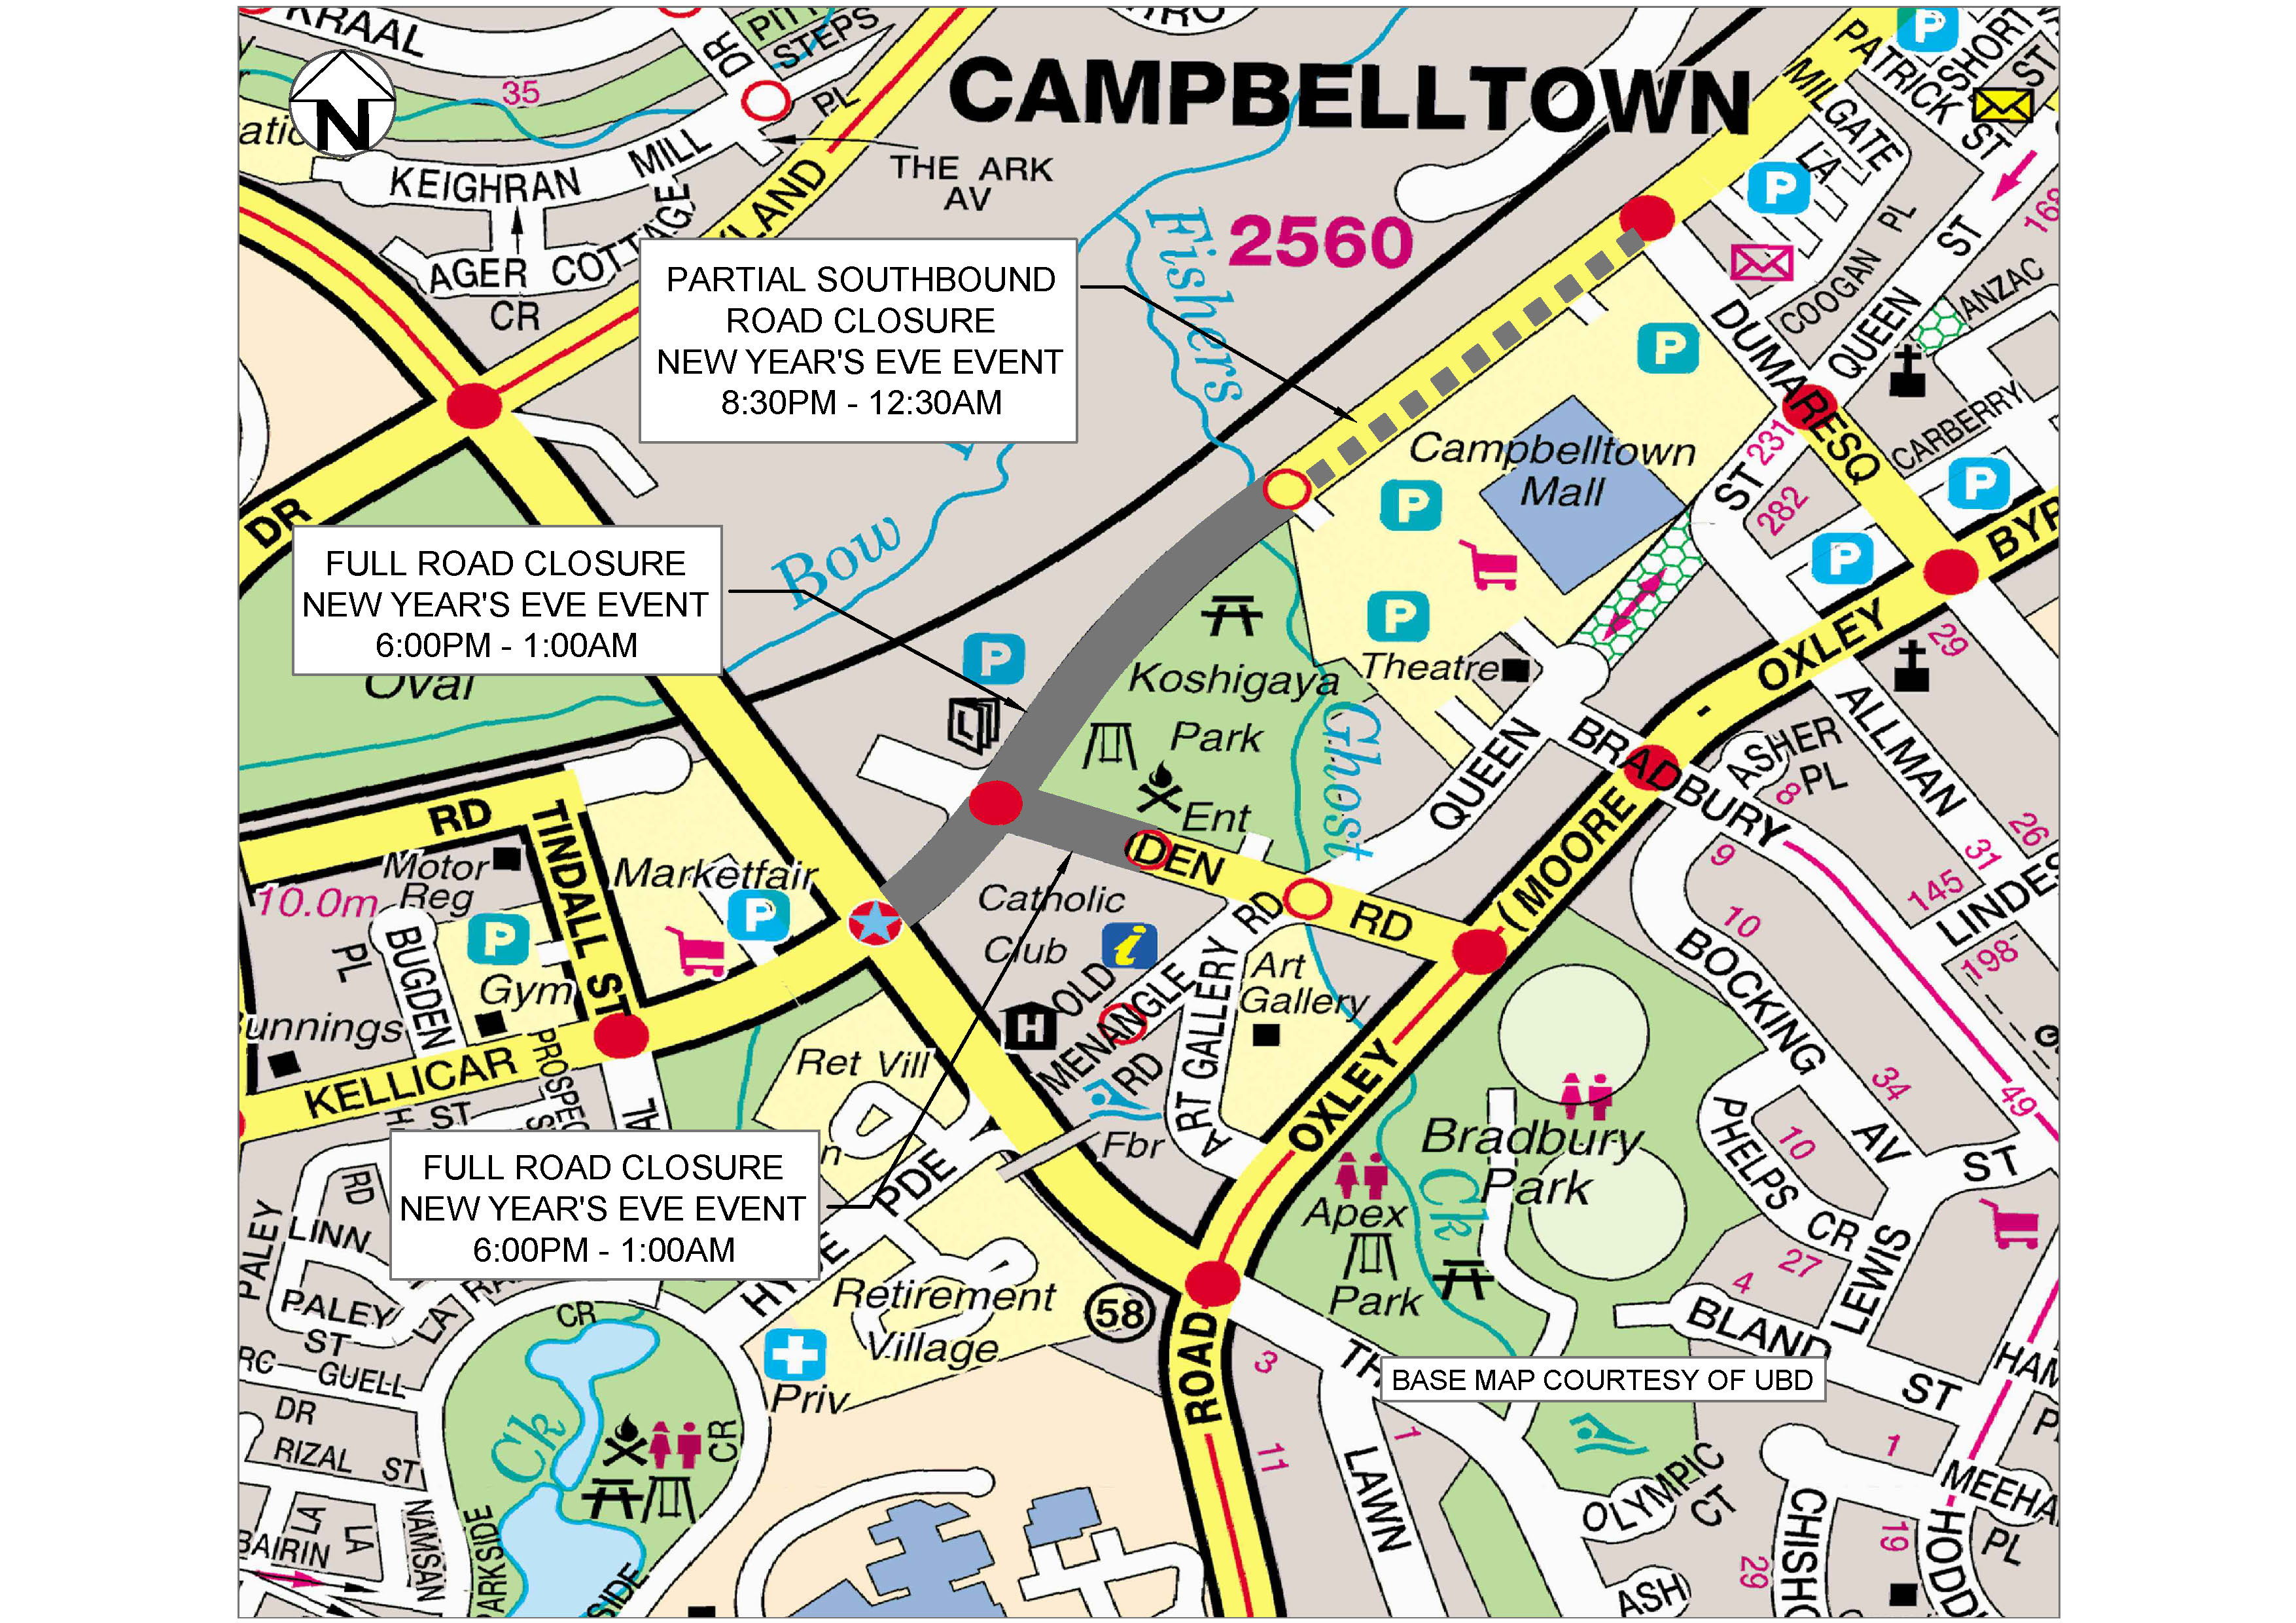 Map of road closures in Campbelltown on New Years Eve